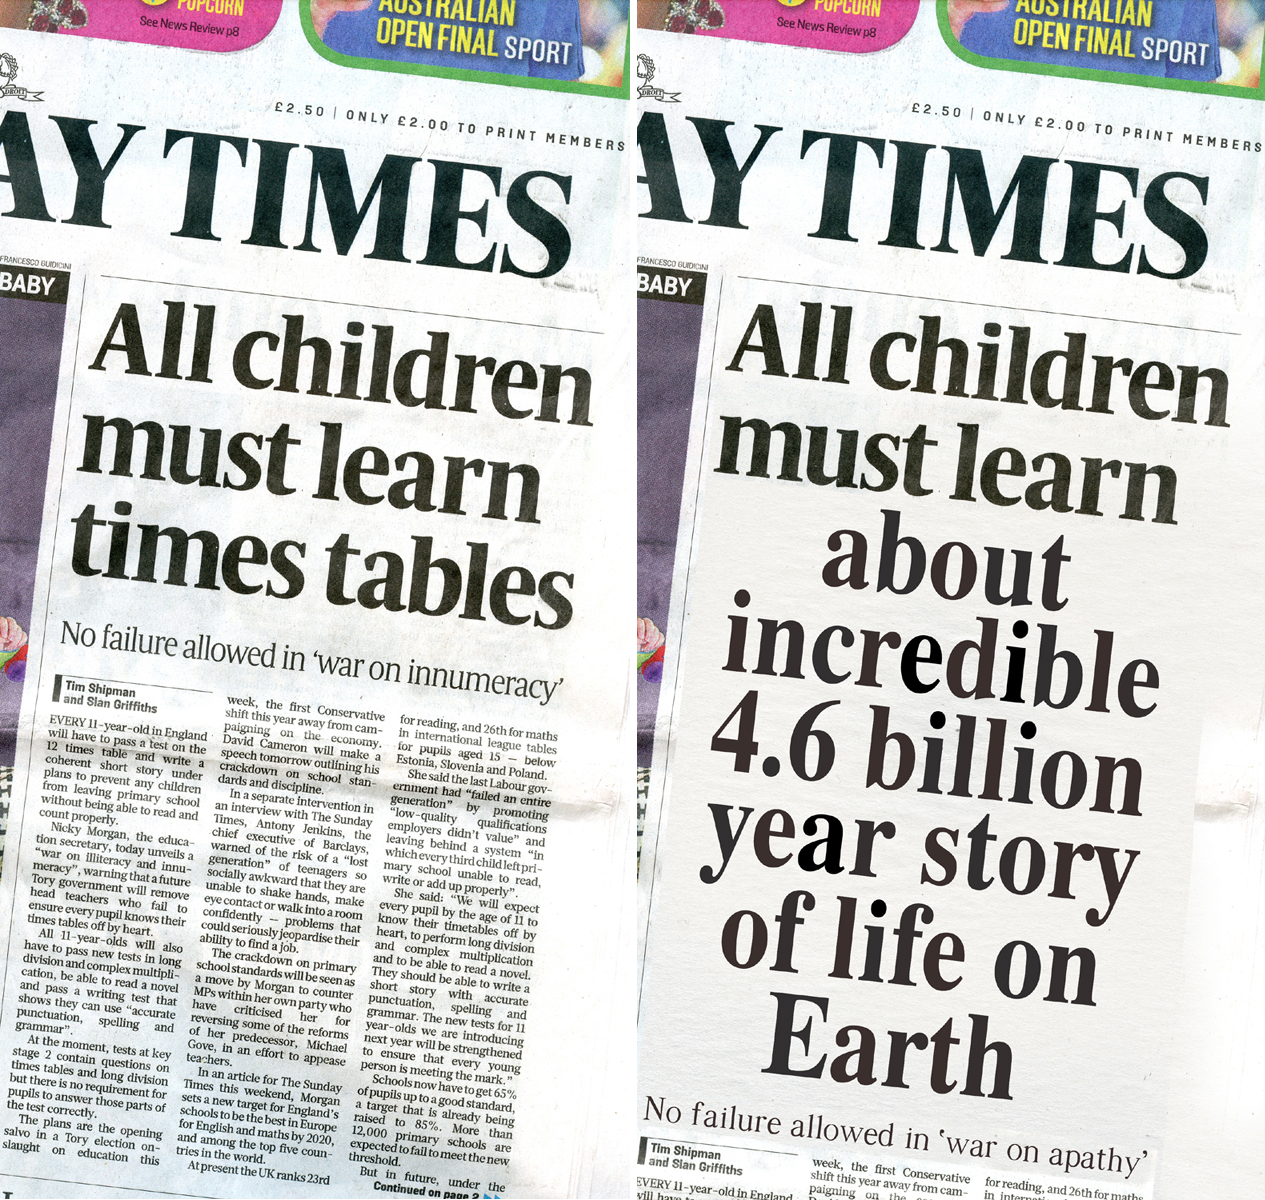 A Sunday Times headline: as it was (left) and as it could be (right)